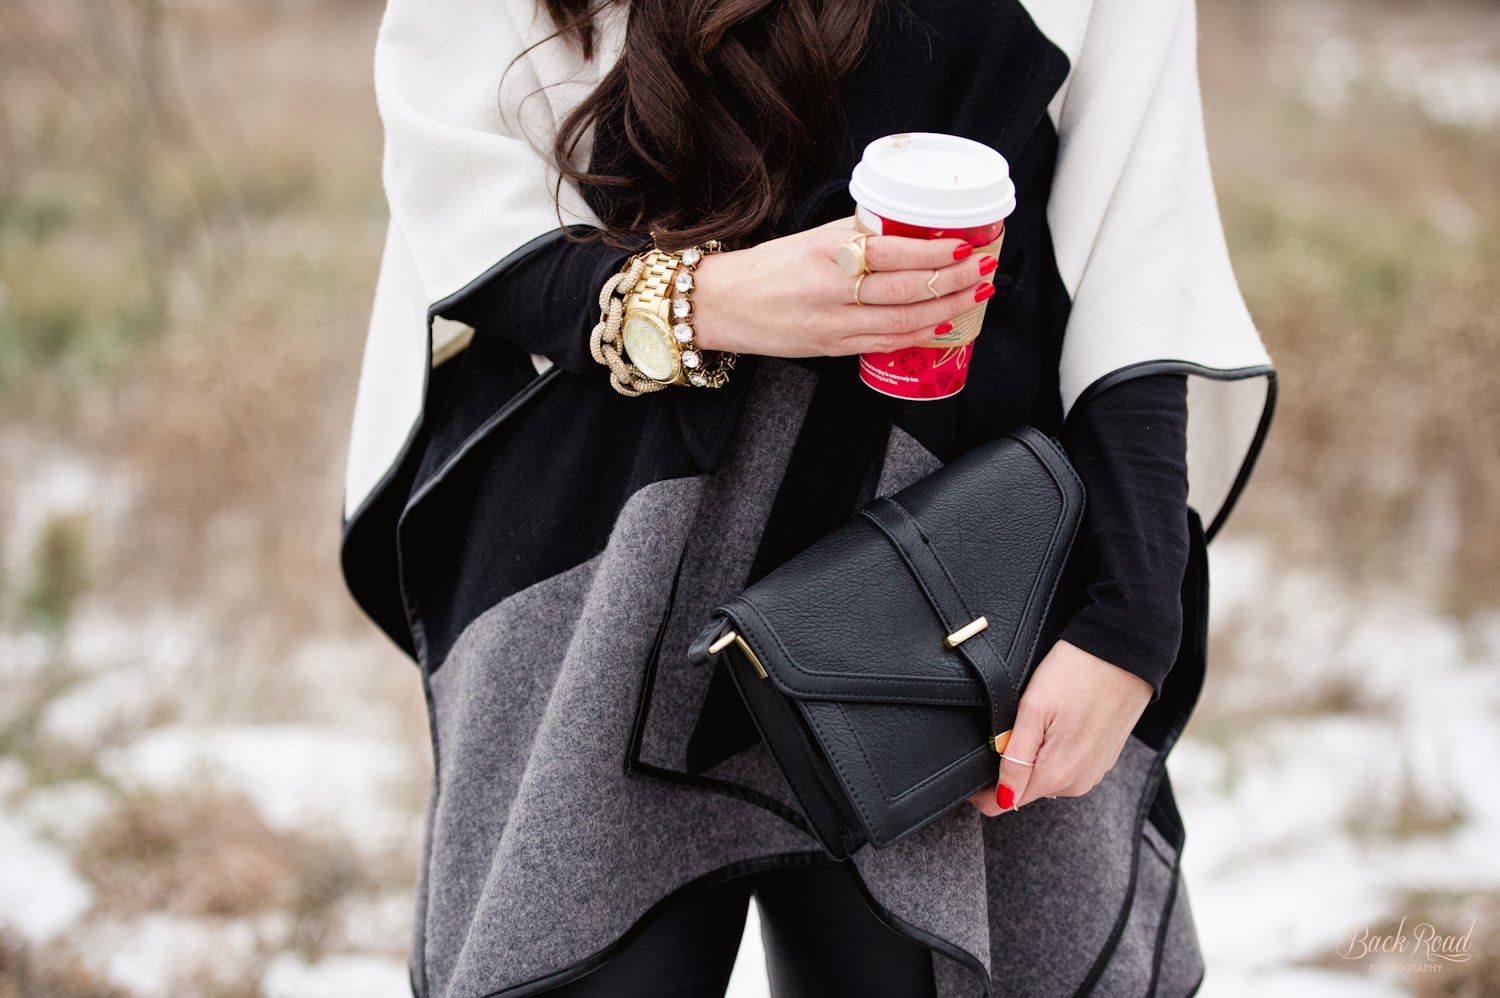 the sweetest thing blog, www.thesweetestthingblog, emily gemma, backroad photography, ann taylor, cape, over the knee boots, sole society, forever 21, michael kors runway watch, jcrew bracelet, jcrew, starbucks